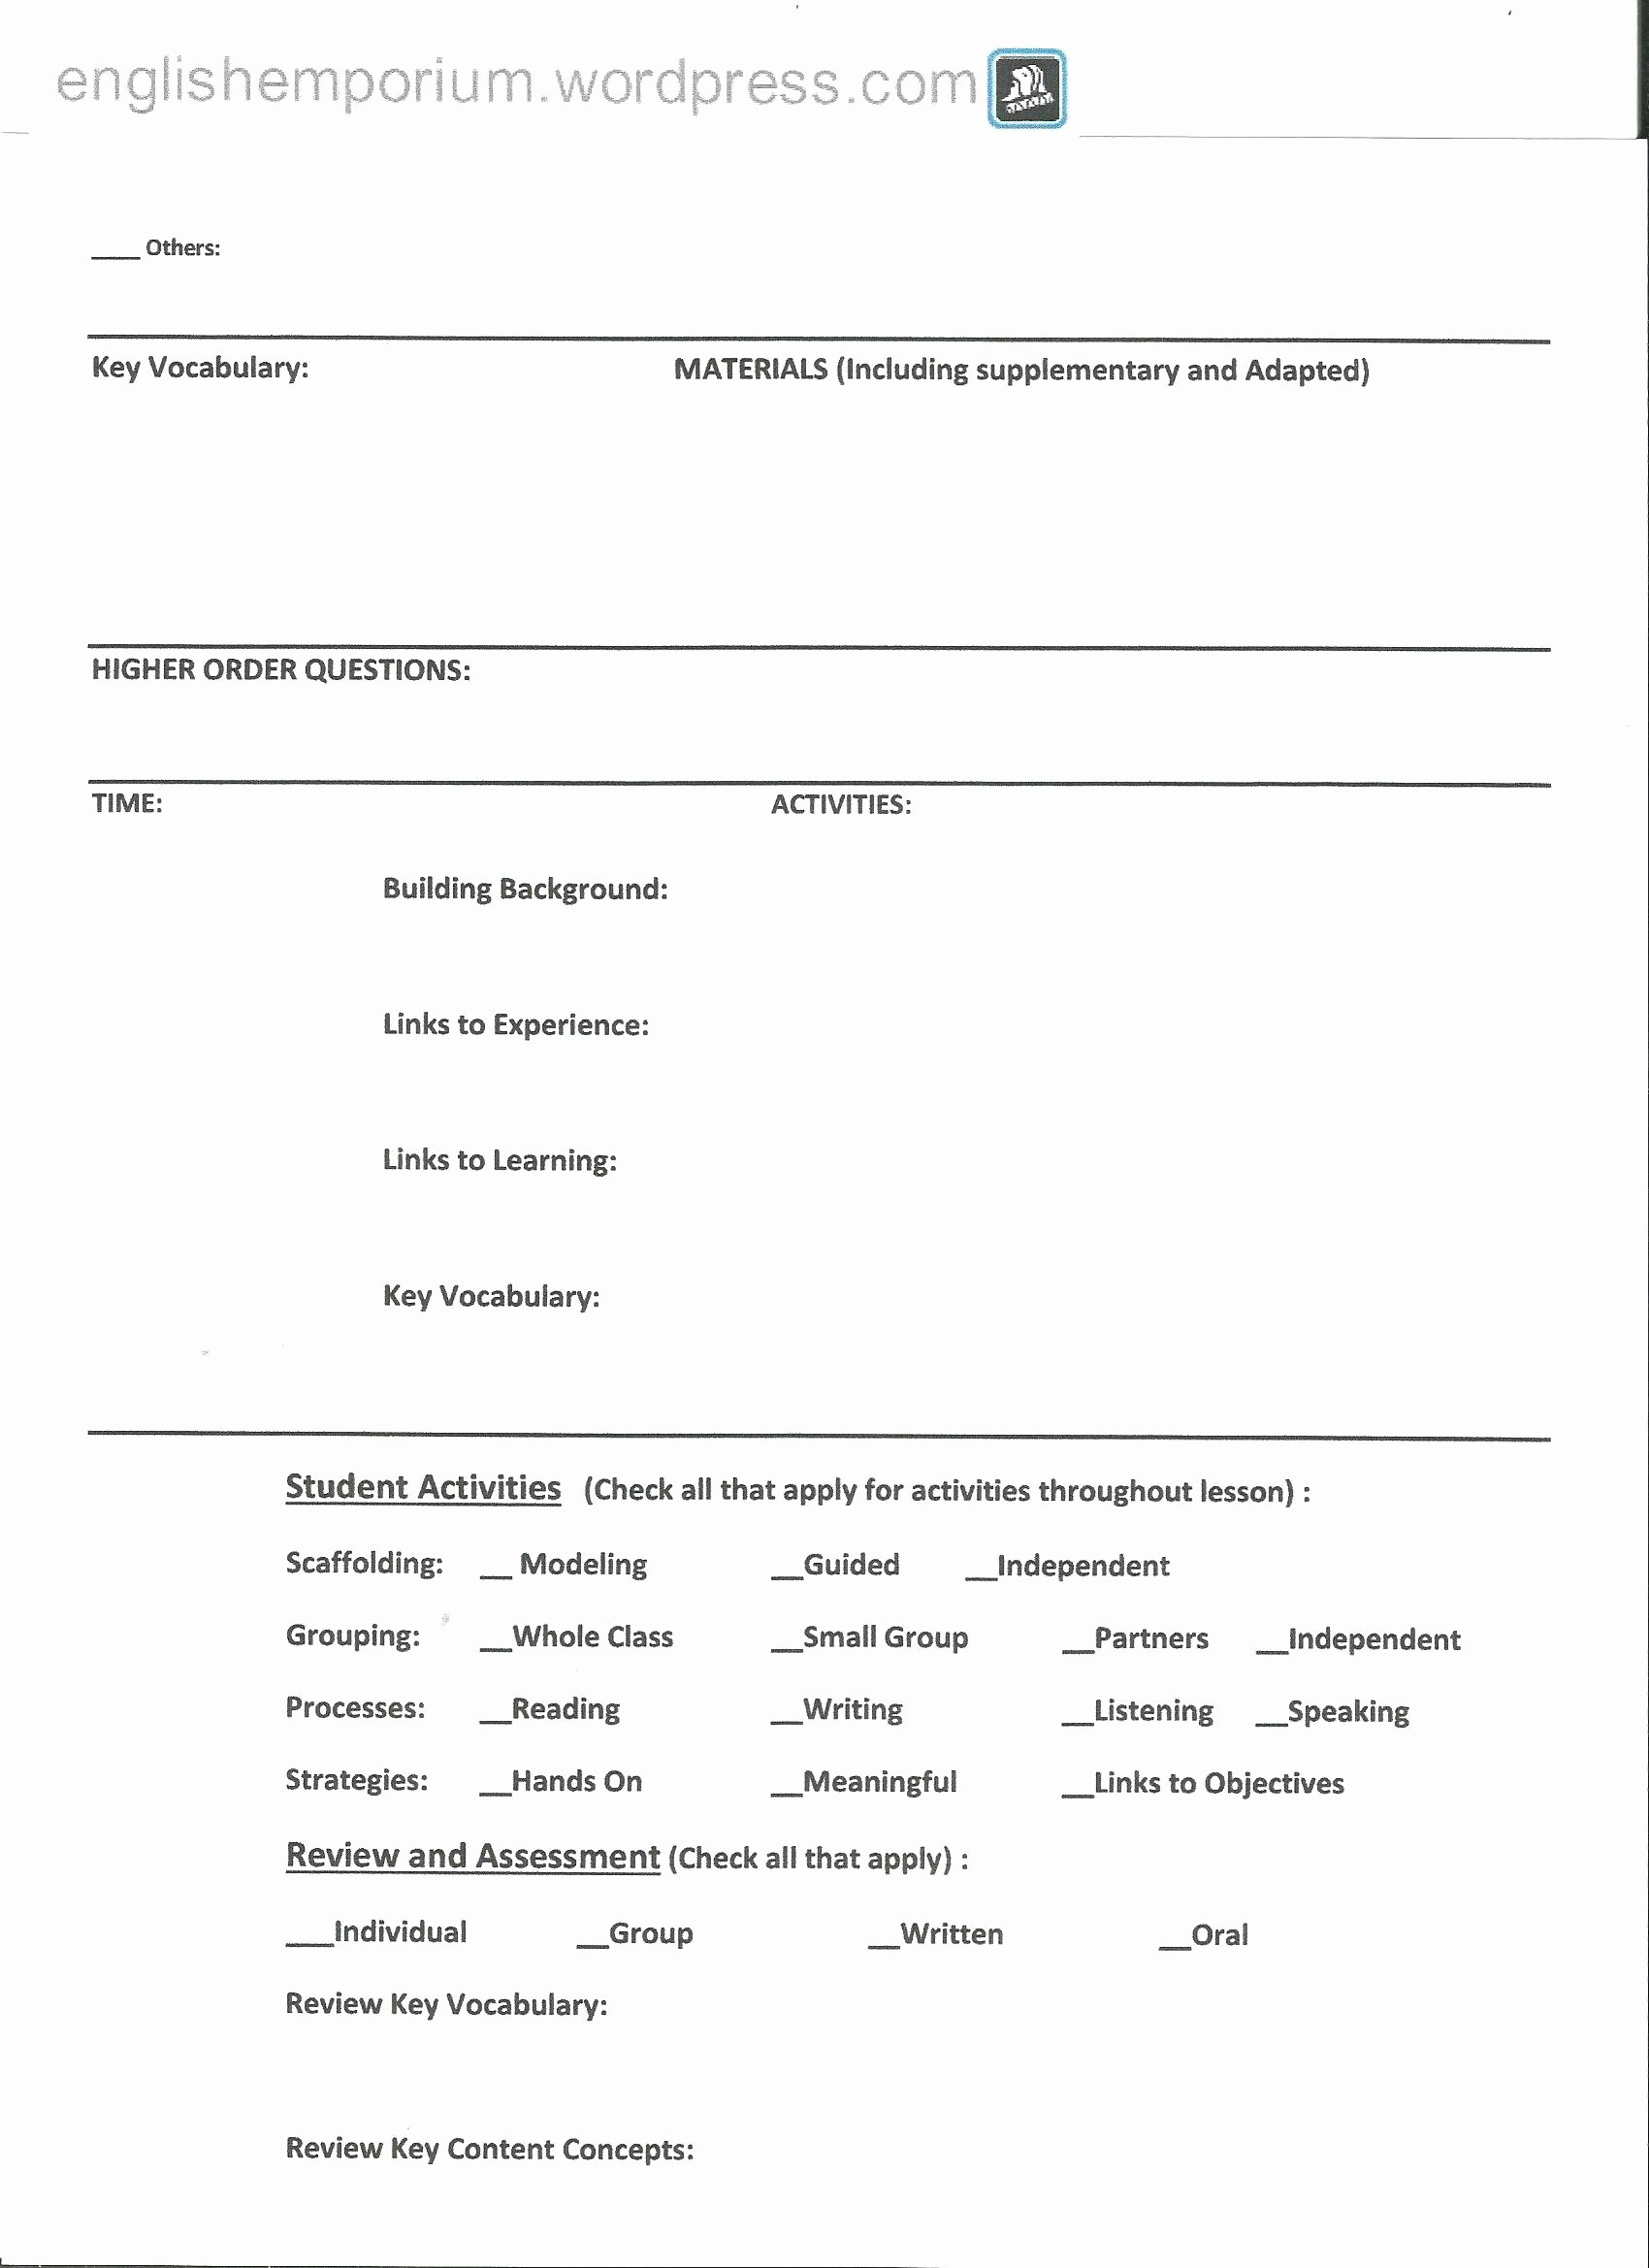 Siop Lesson Plan Template 3 Beautiful Siop Lesson Plan Example 2nd Grade for First